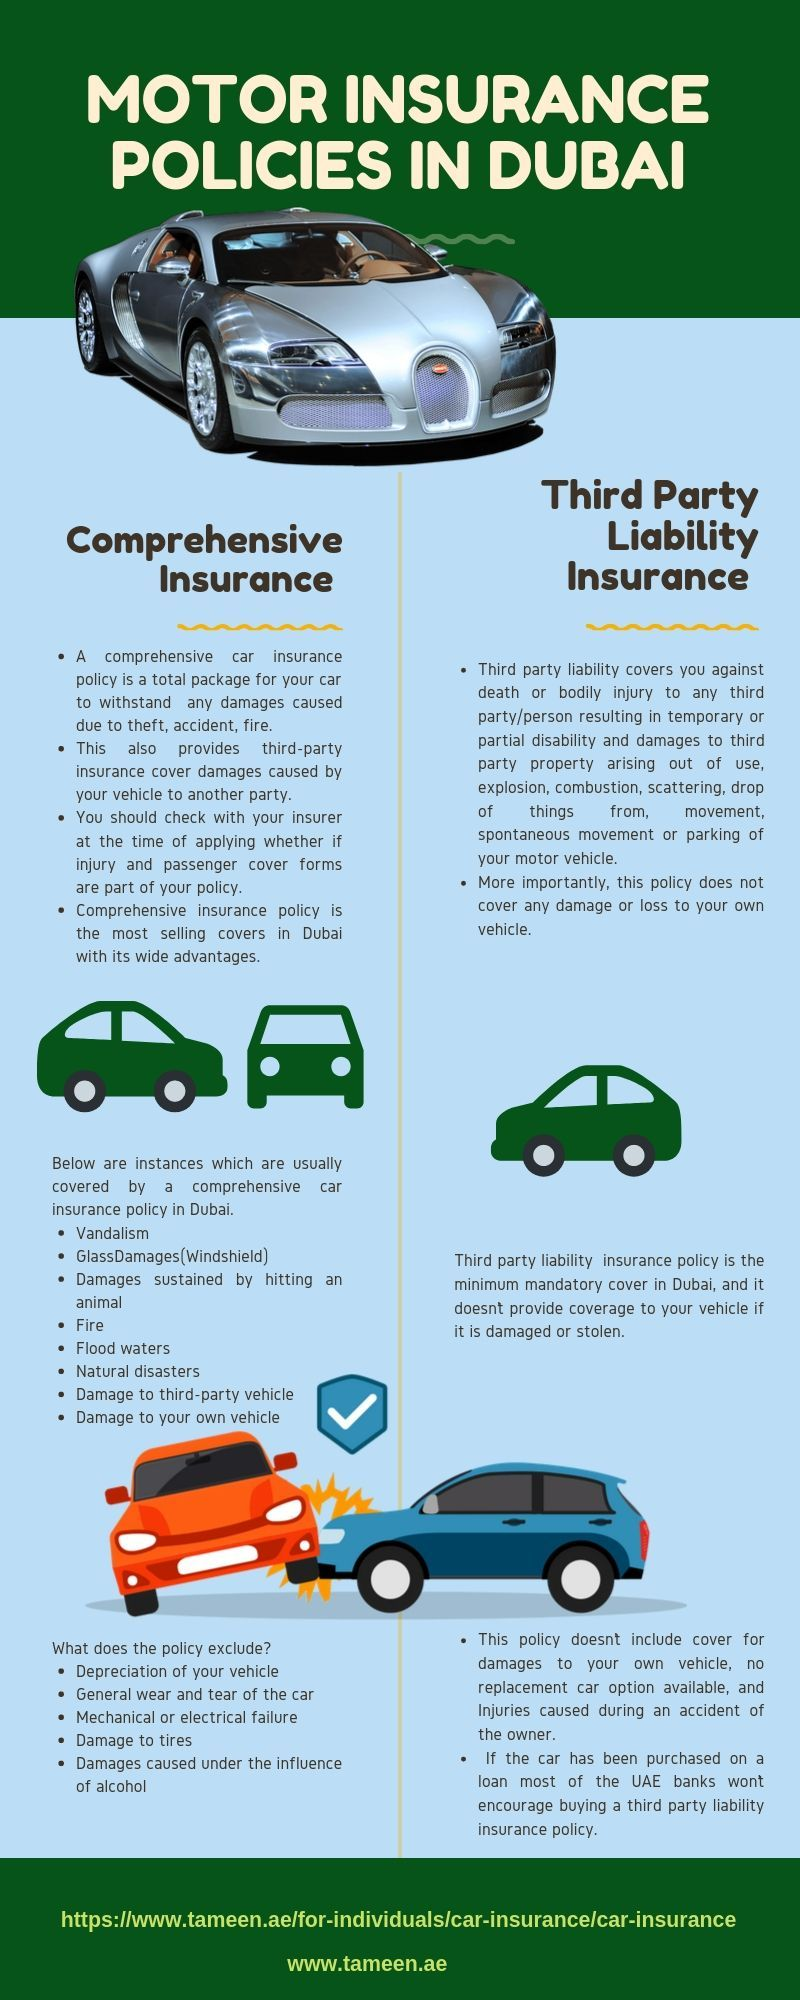 Comprehensive and third party liability insurance policy